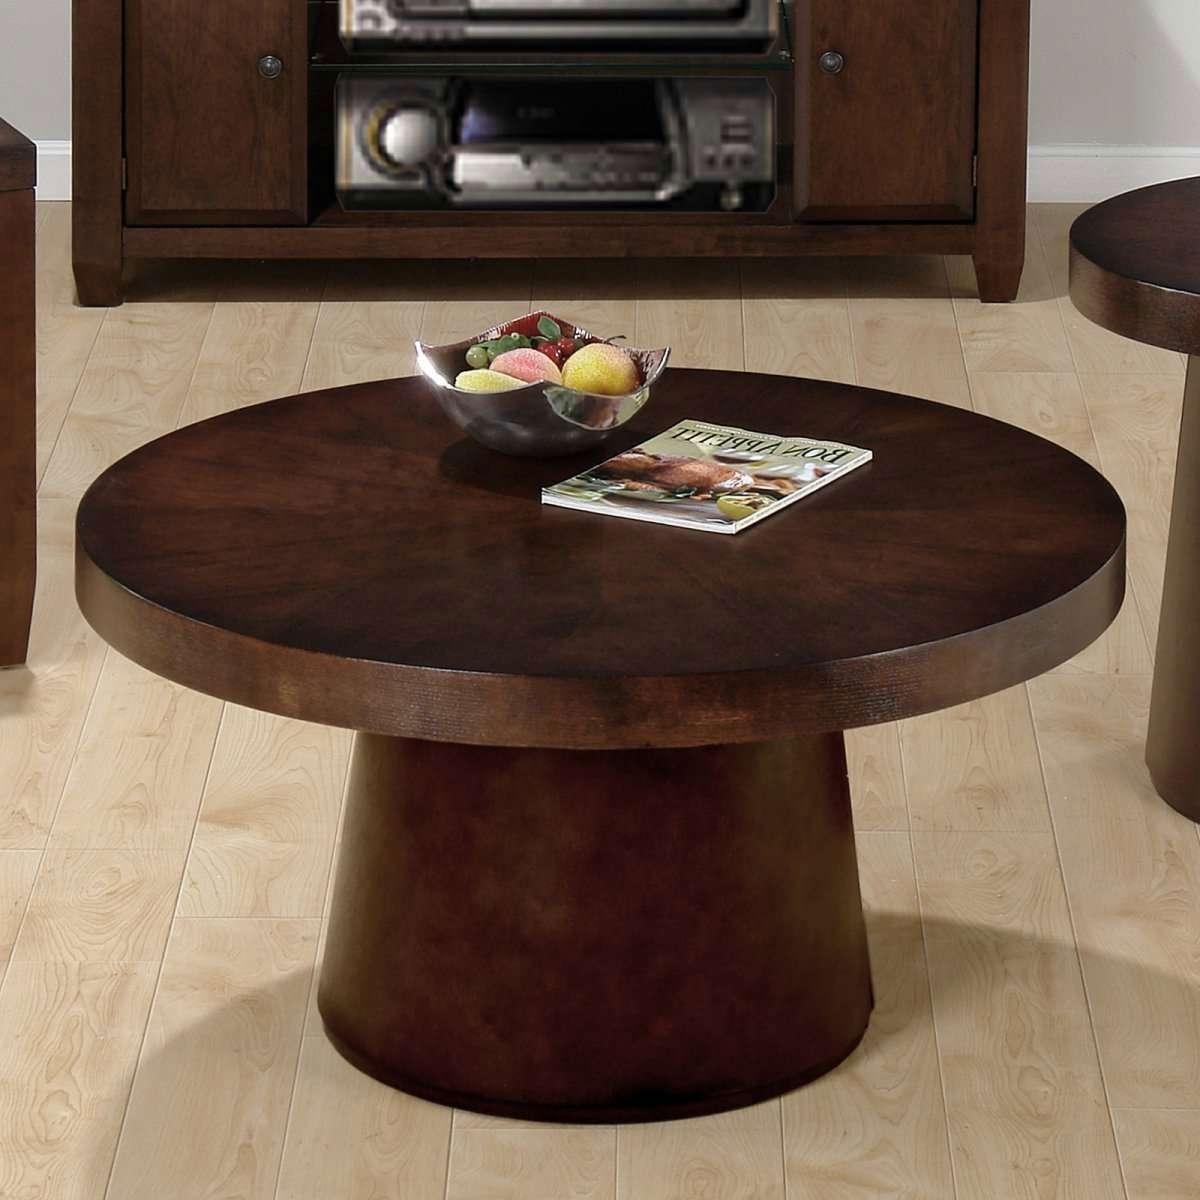 10 Best Small Round Coffee Tables For Round Coffee Tables Round For 2018 Small Circular Coffee Table (View 2 of 20)